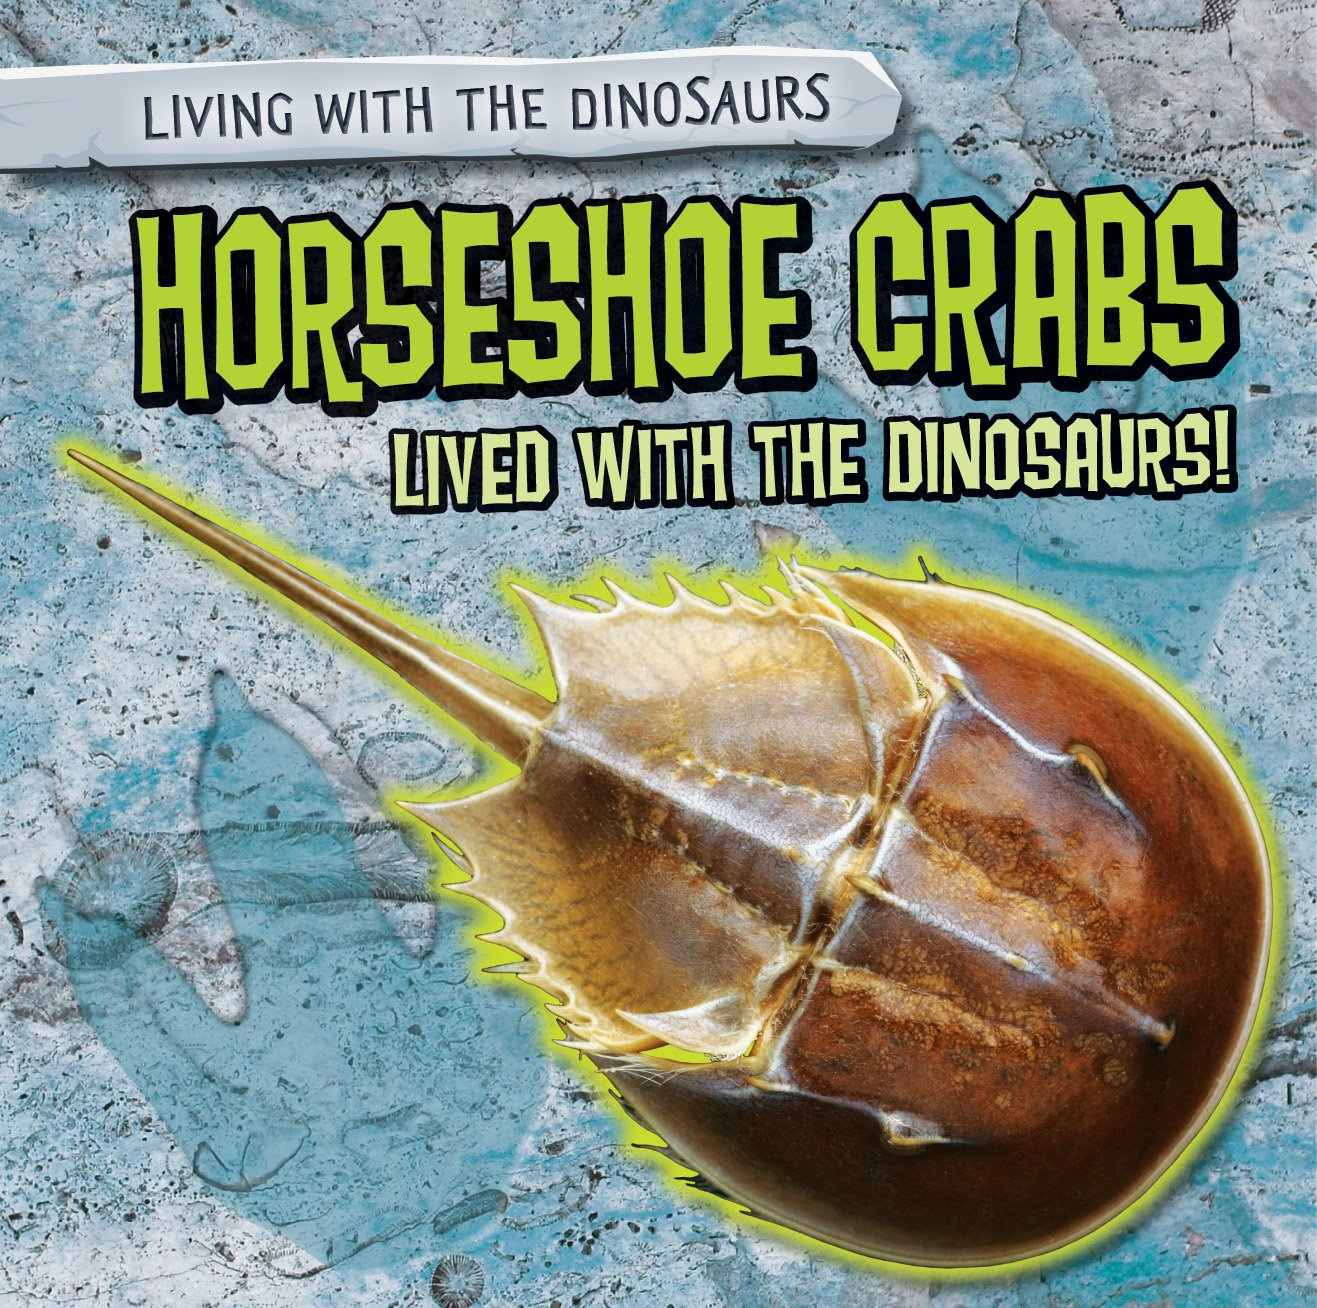 Download Horseshoe Crabs Lived With the Dinosaurs! (Living With the Dinosaurs) ebook